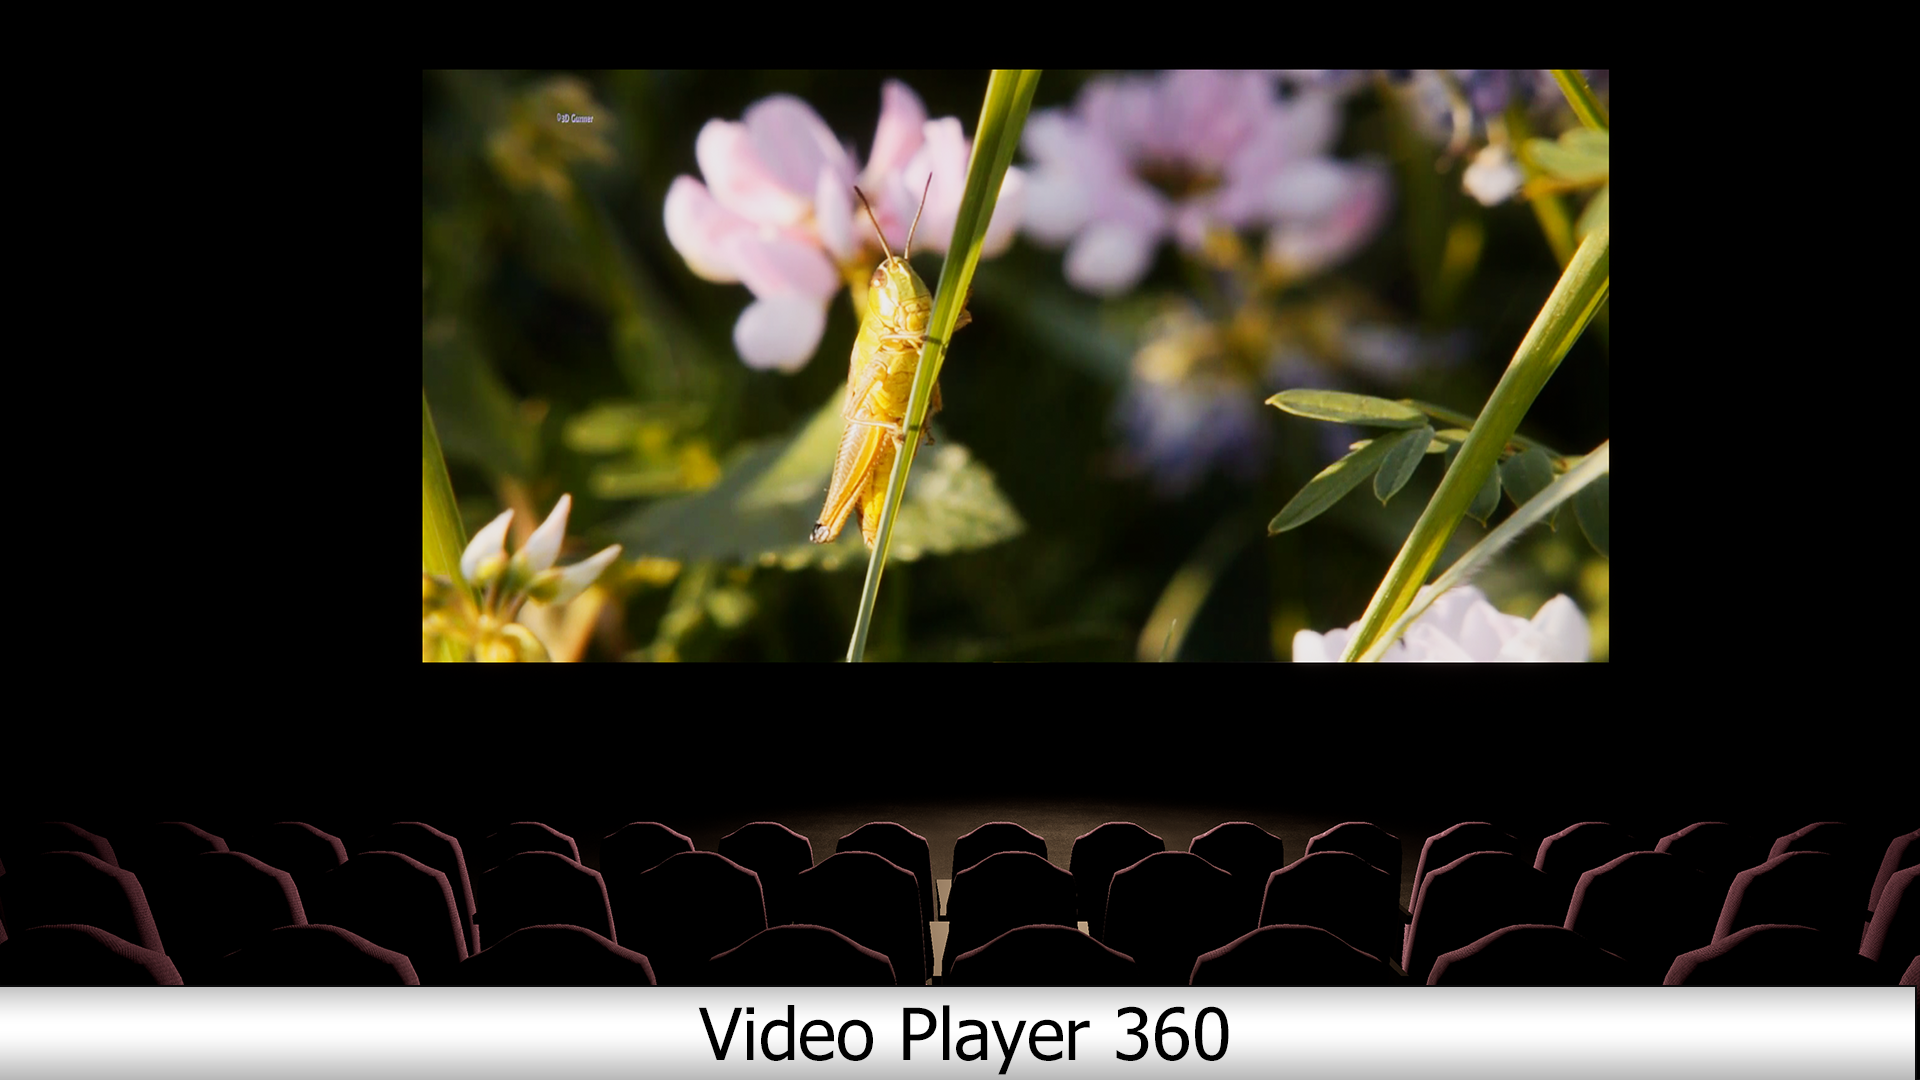 Video Player 360 (2D, 180, 360, Stereo) by ElizzaRF in Code Plugins